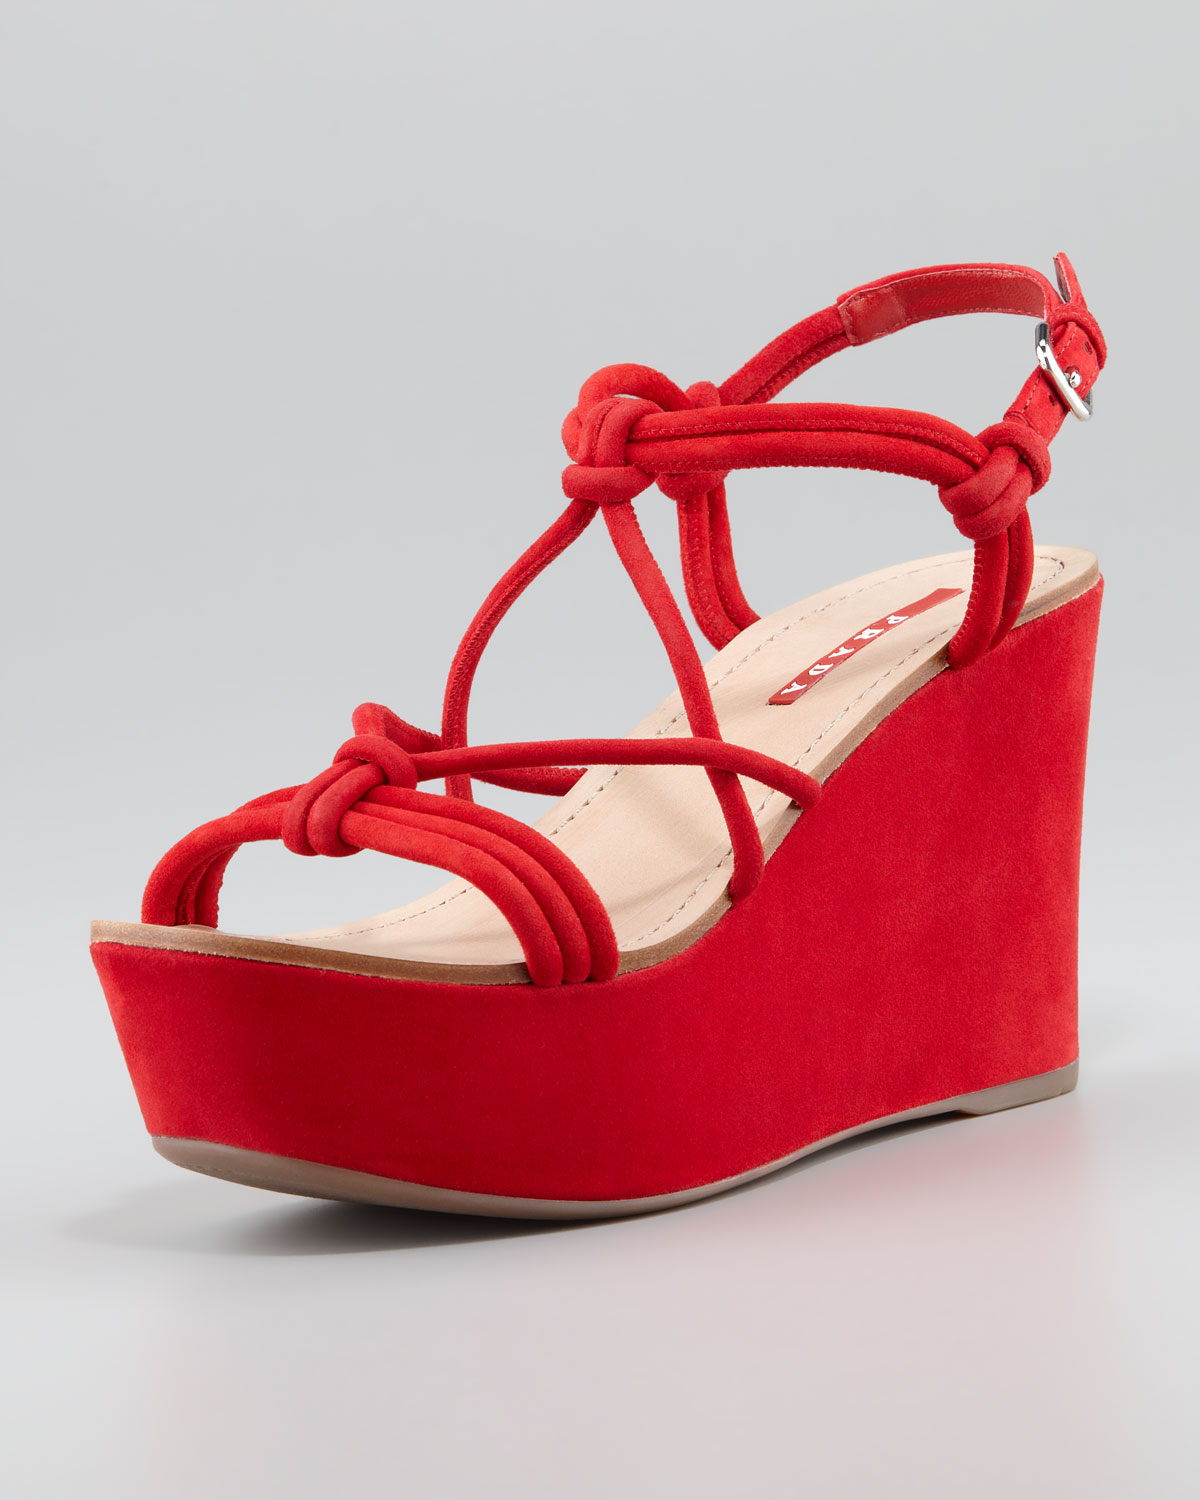 1925a9abe8b Lyst - Prada Suede Strappy Knot Wedge Sandal in Red